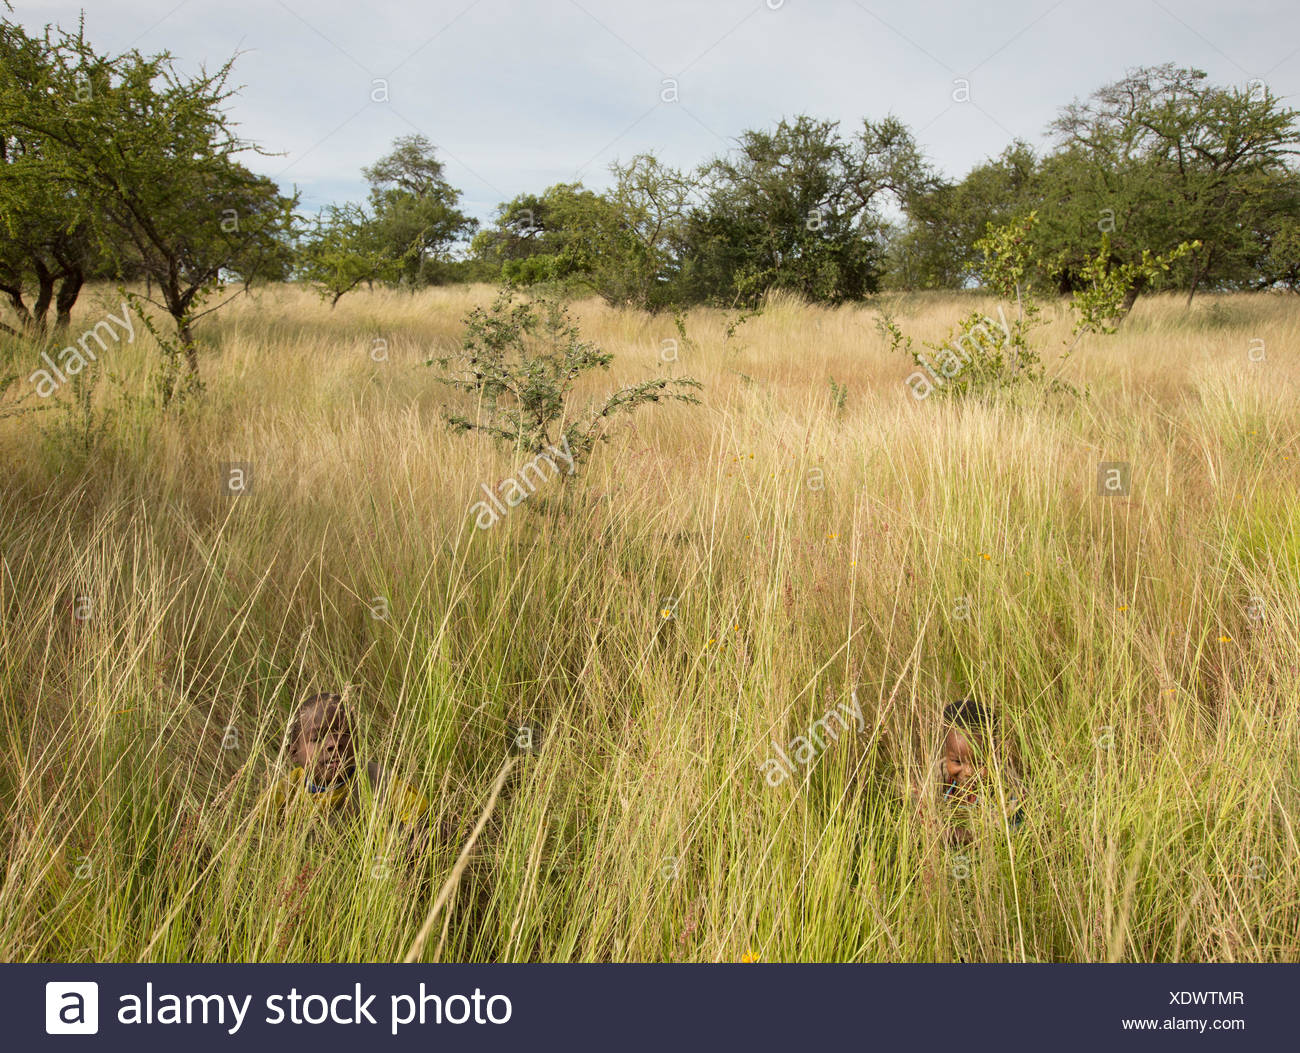 Hadza children playing hide and seek in the high grass. - Stock Image